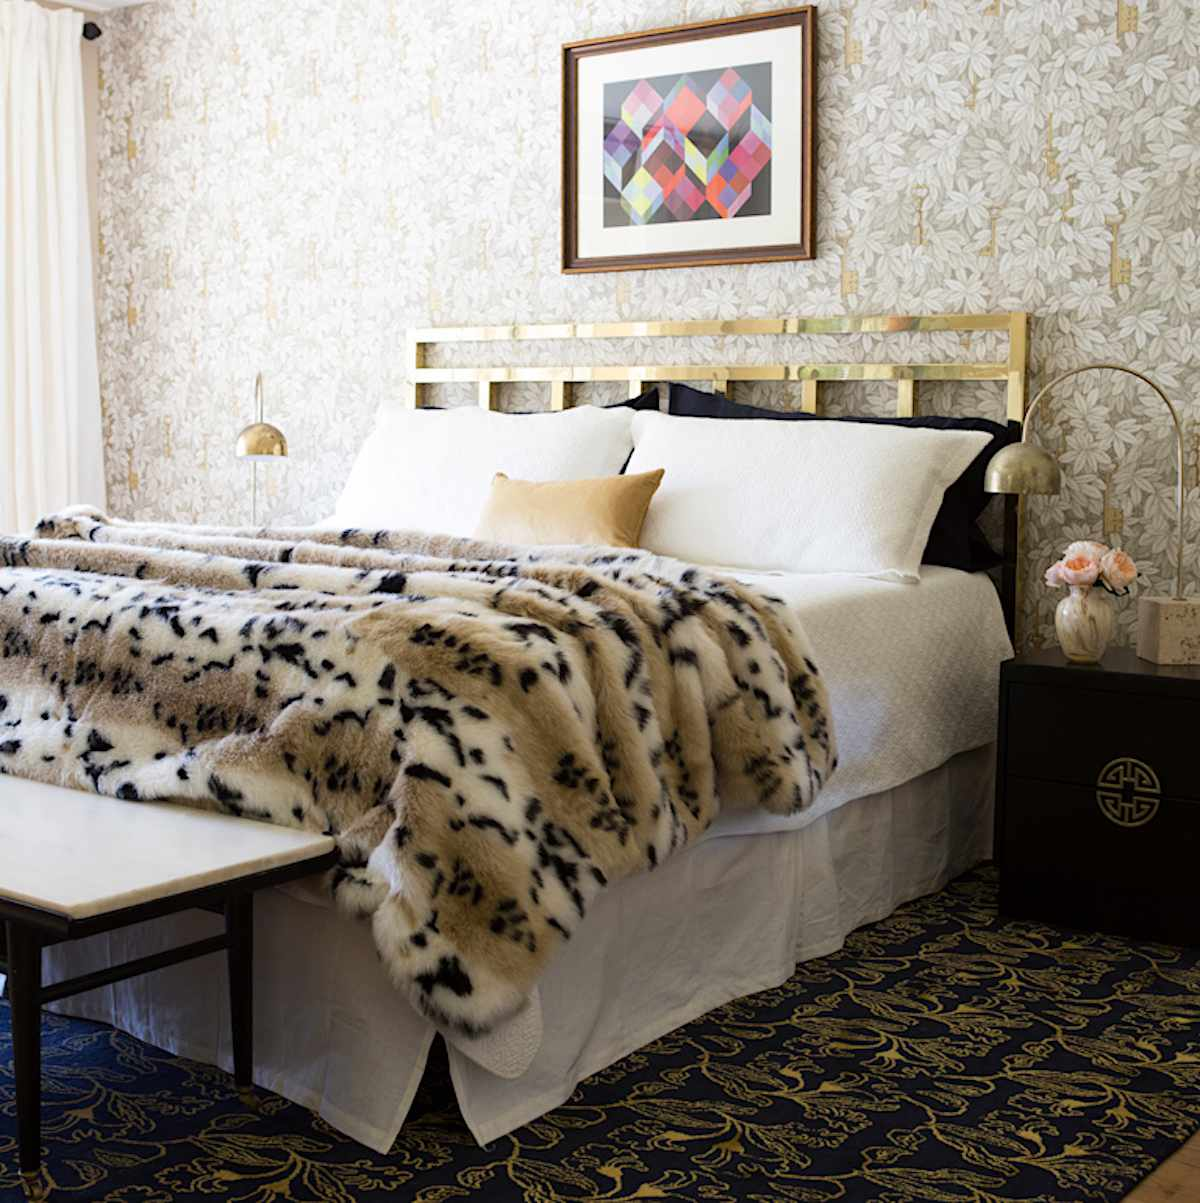 eclectic bedroom with various patterns and styles